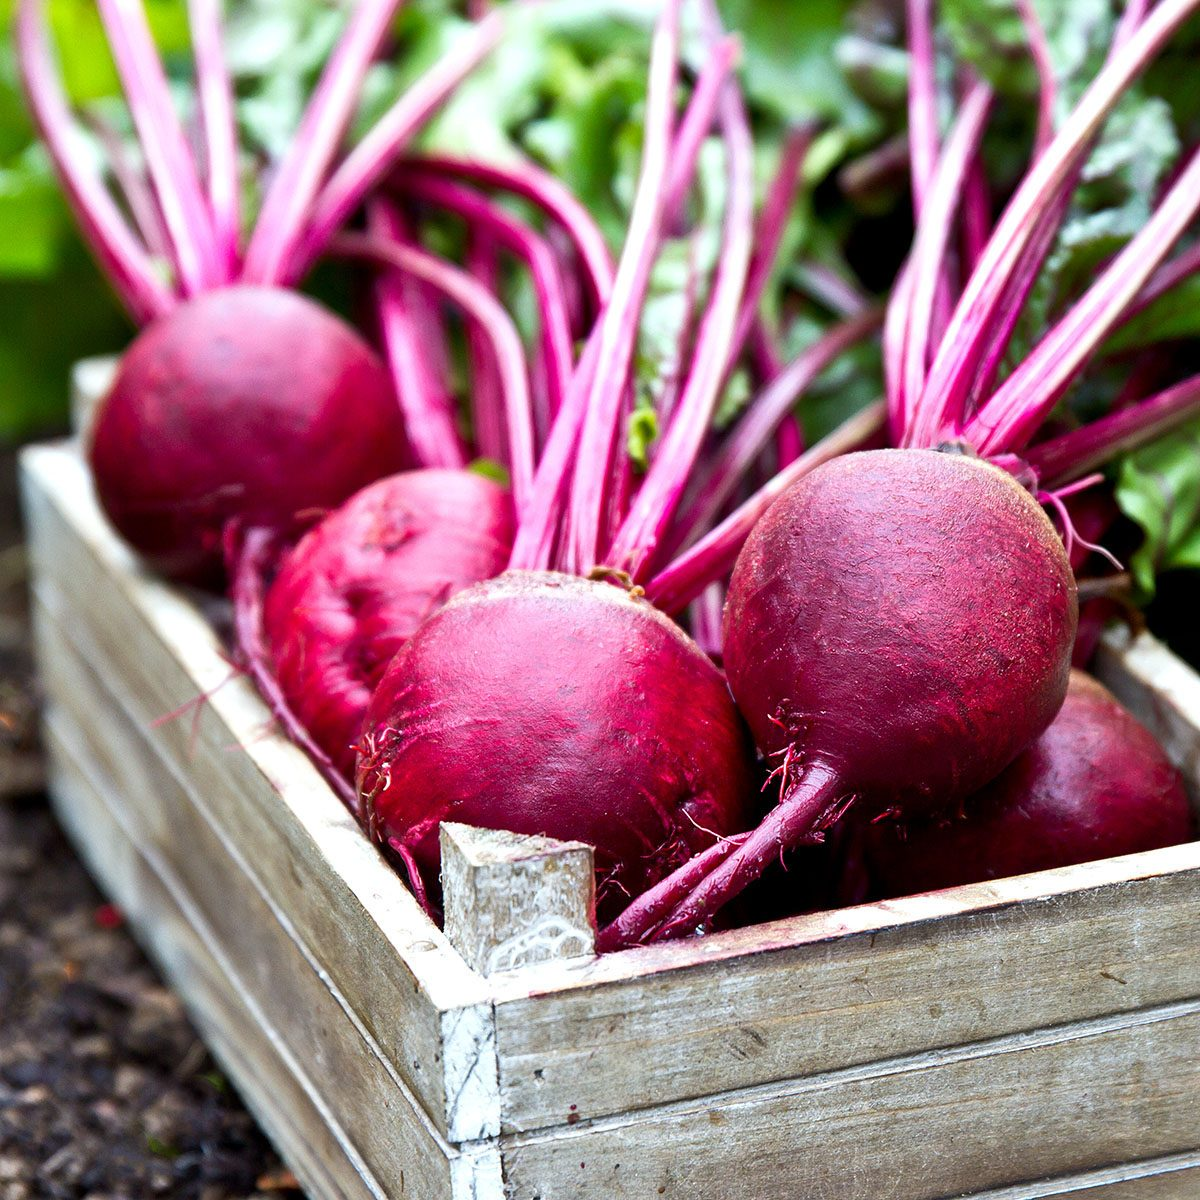 Freshly picked beetroots in wooden tray.